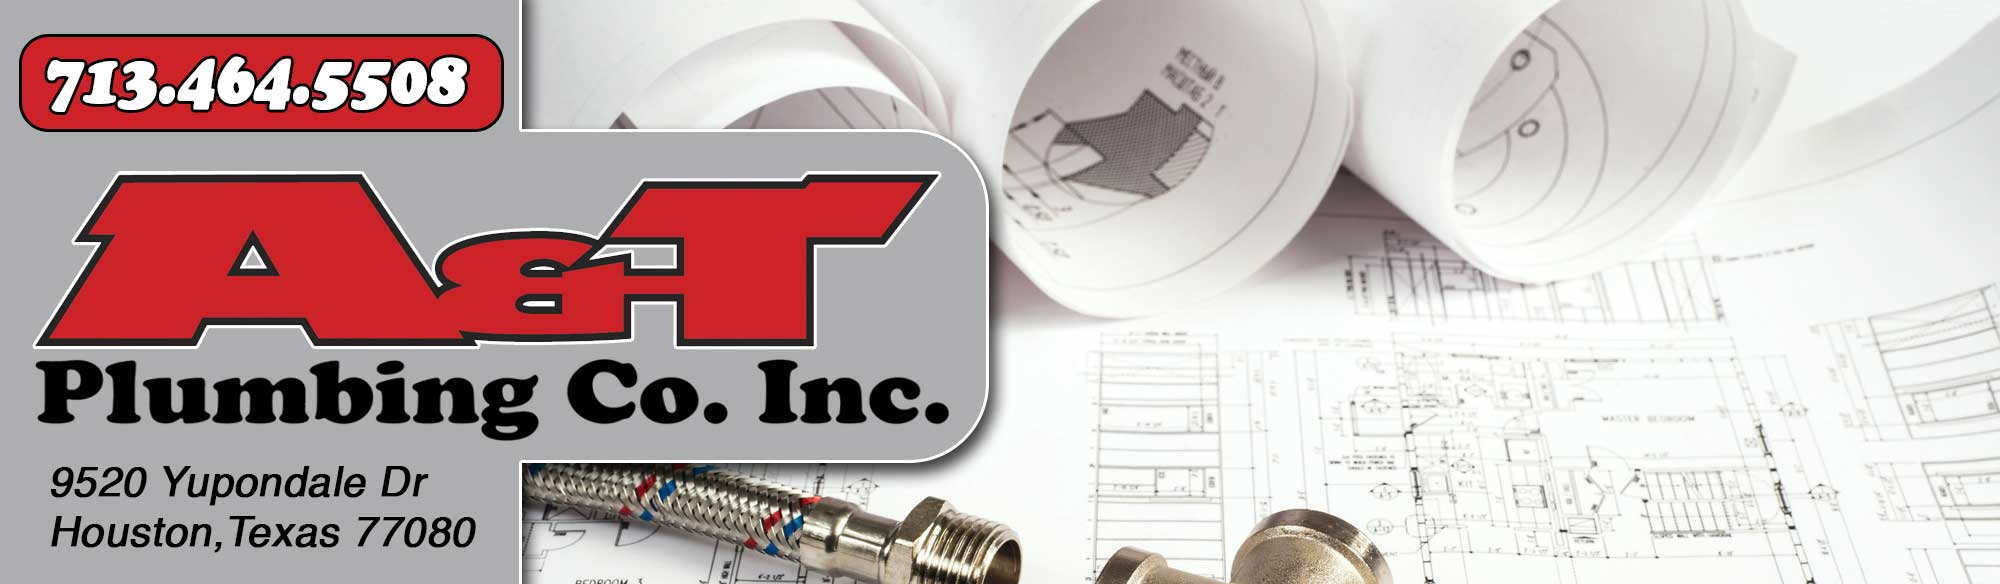 Plumbing Services for master planning and developers